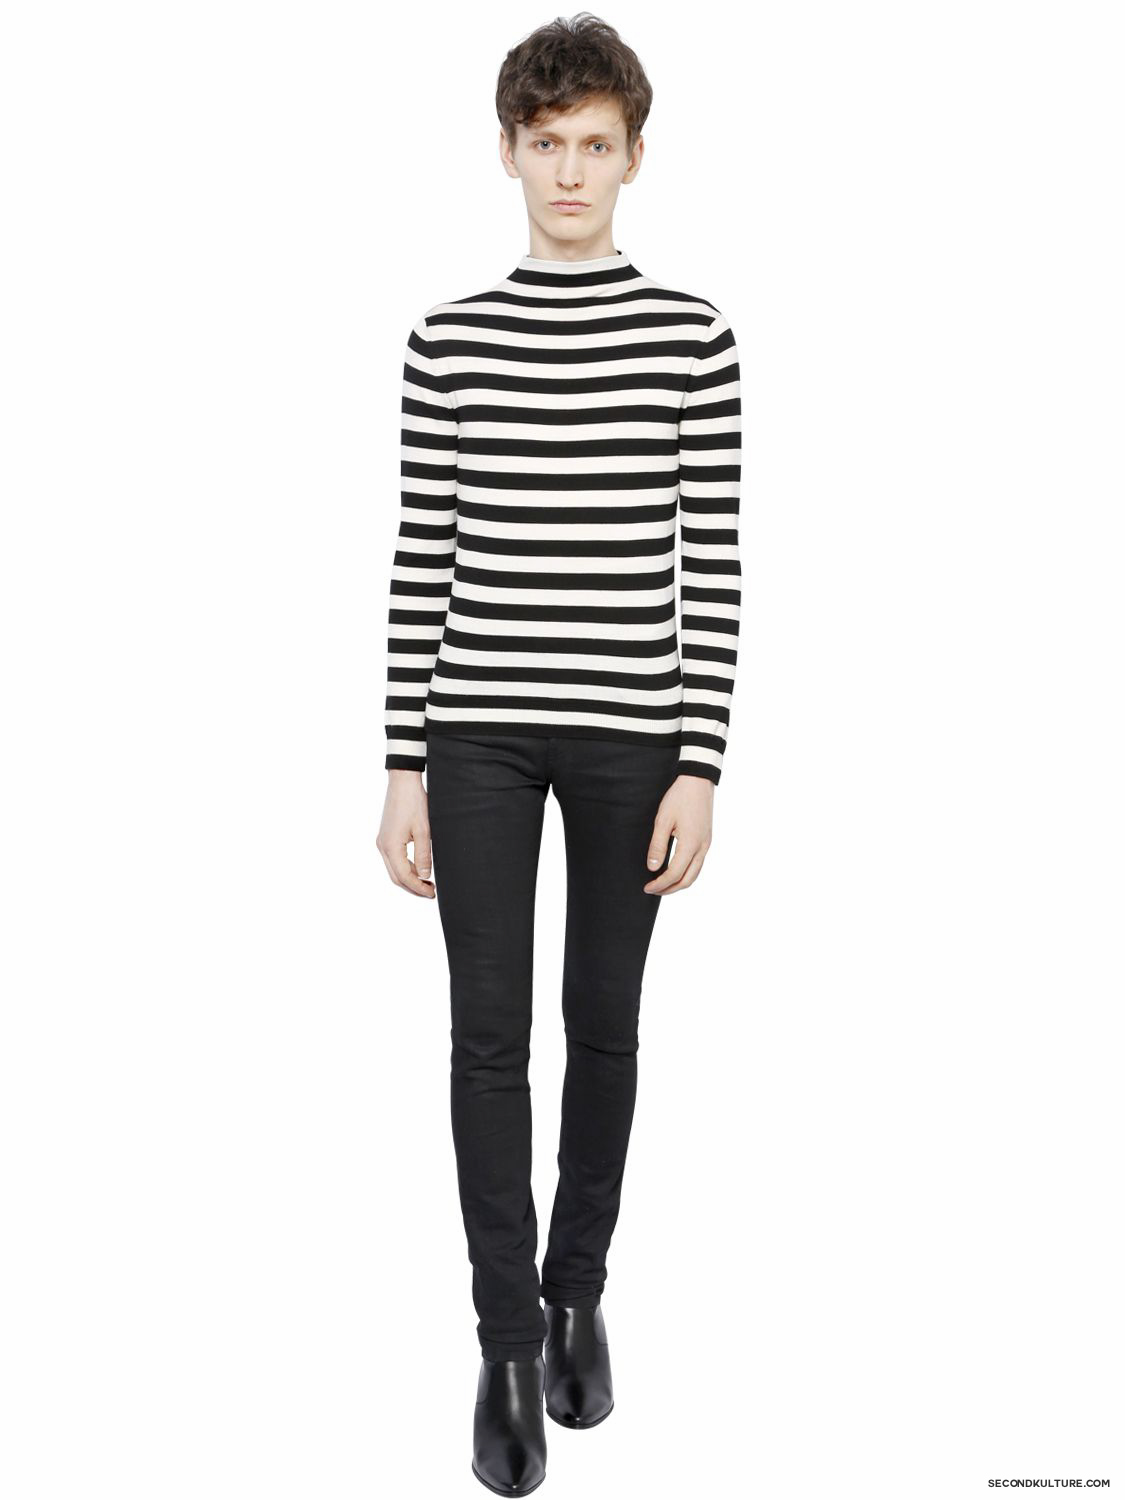 Saint-Laurent-White-and-Black-Striped-Wool-Sweater-Fall-Winter-2015-2